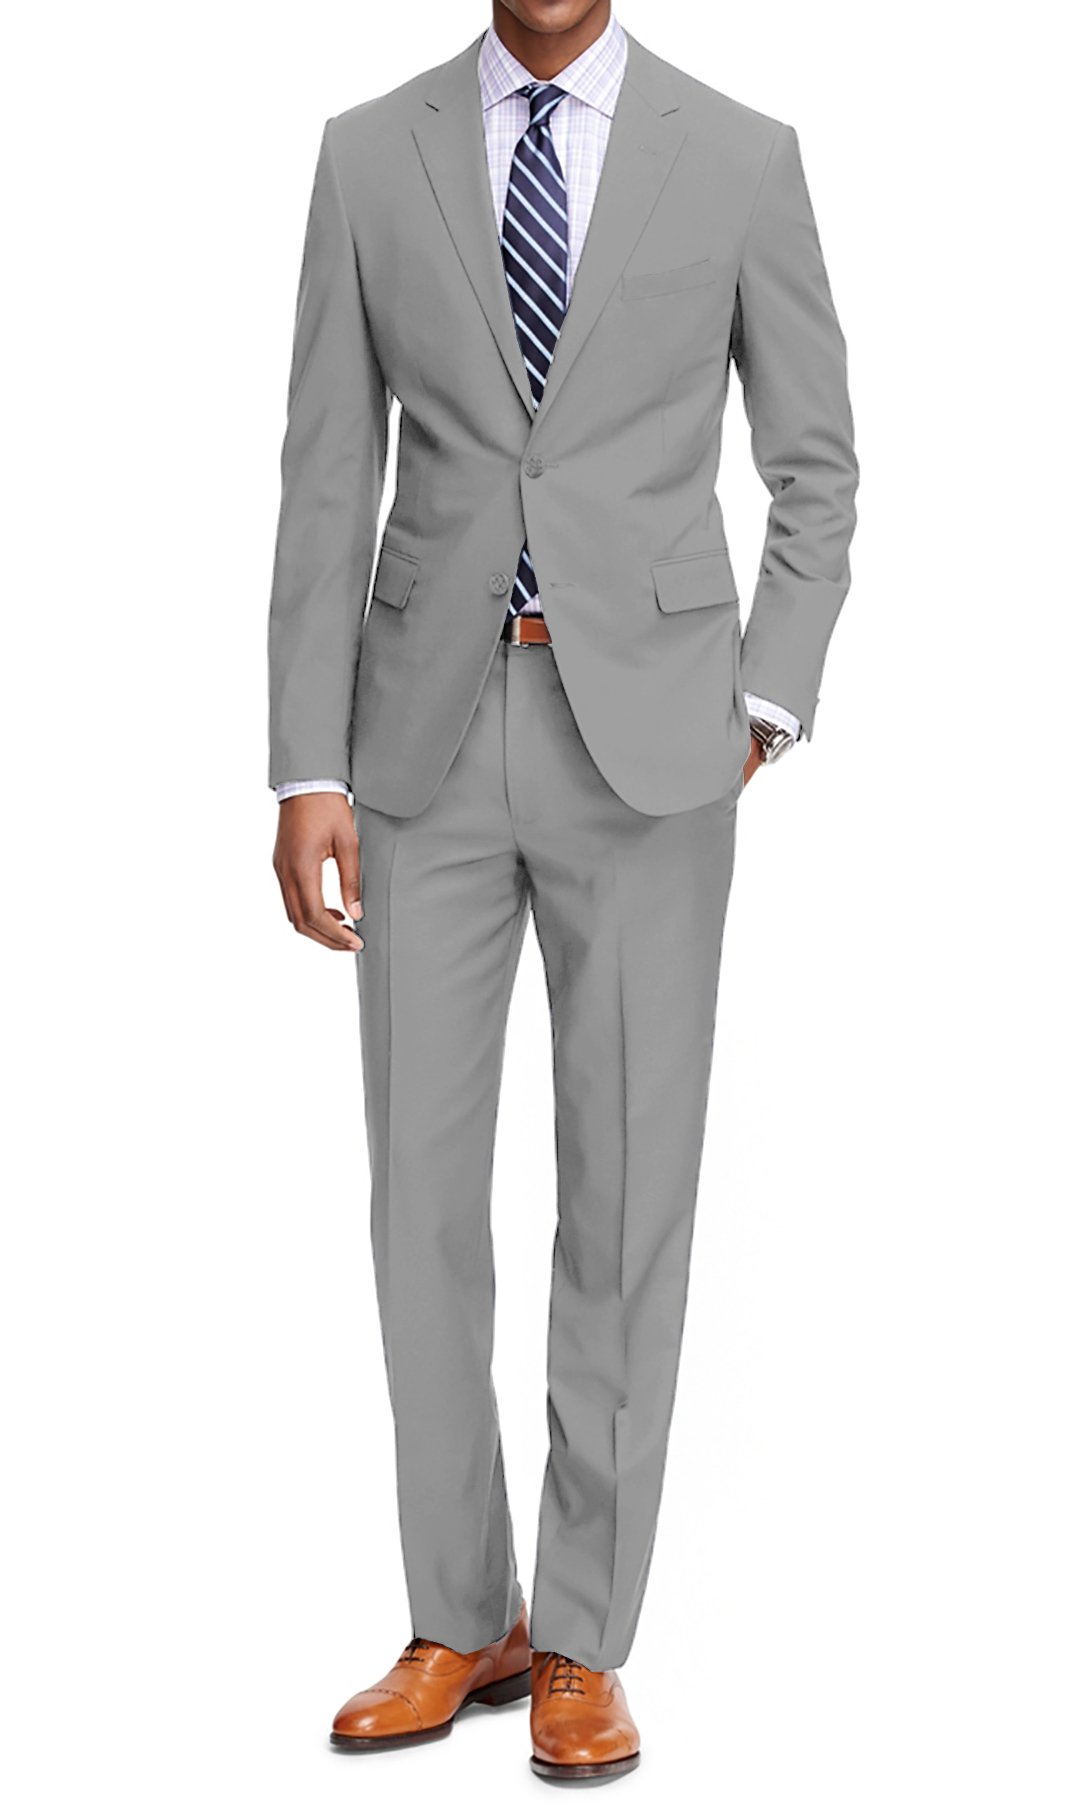 MDRN Uomo Men's Classic Fit 2 Piece Suit, Light Grey, Size 46R/40W